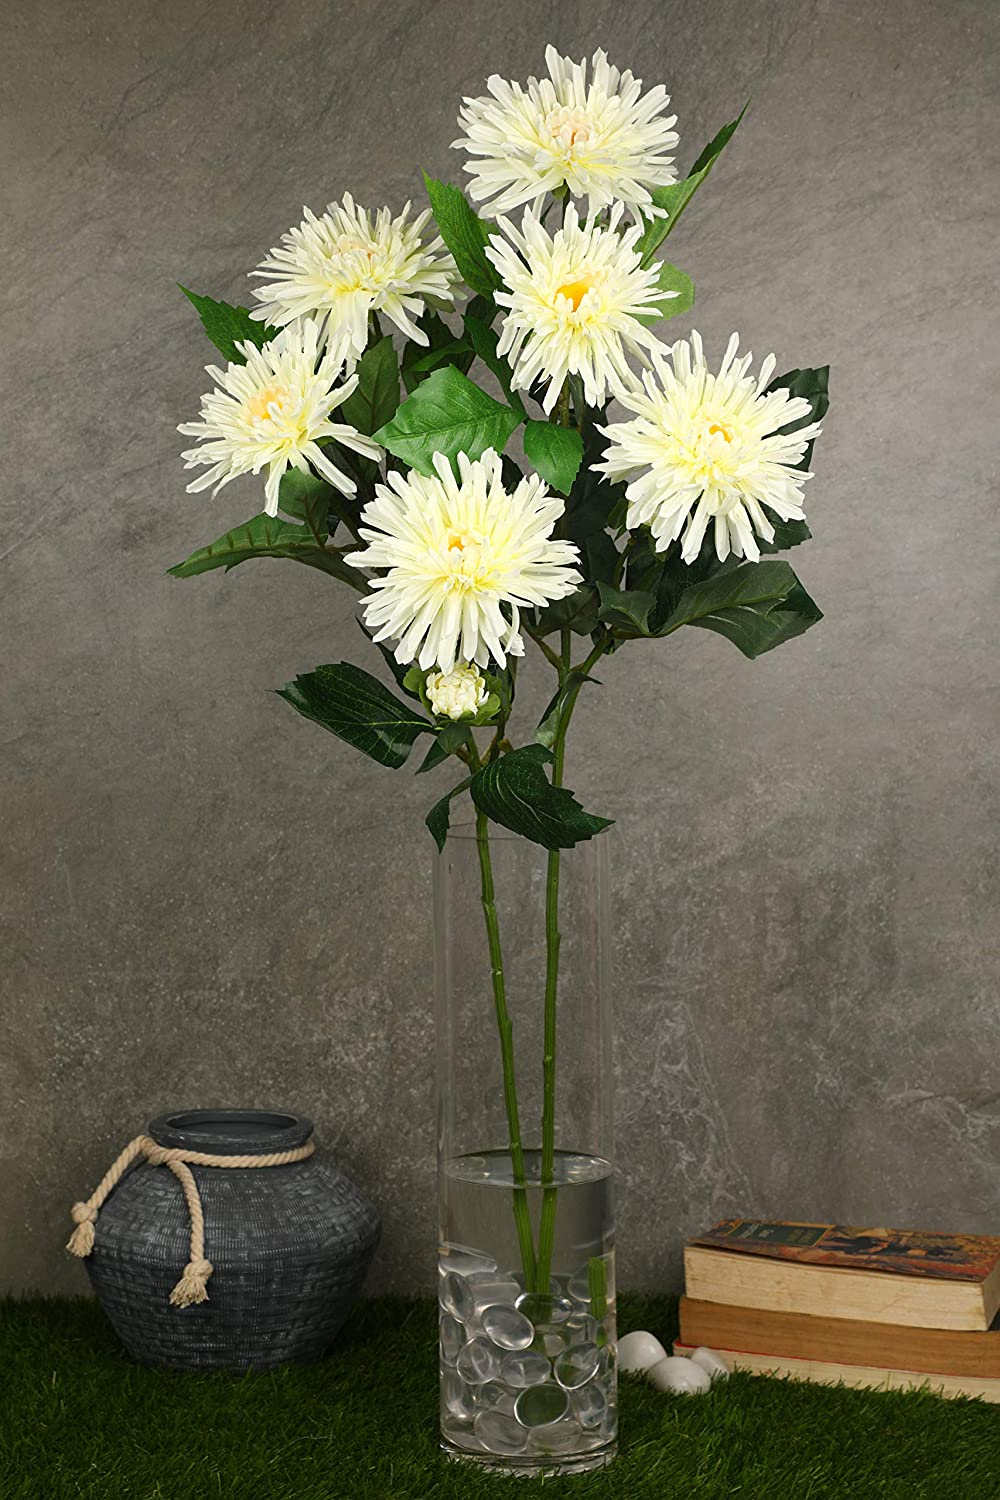 PolliNation Attractive Graceful White Fujimum Artificial Flowers for Home  (Pack of 2, 29 INCH) - Artificial Flowers & Plants - PolliNation